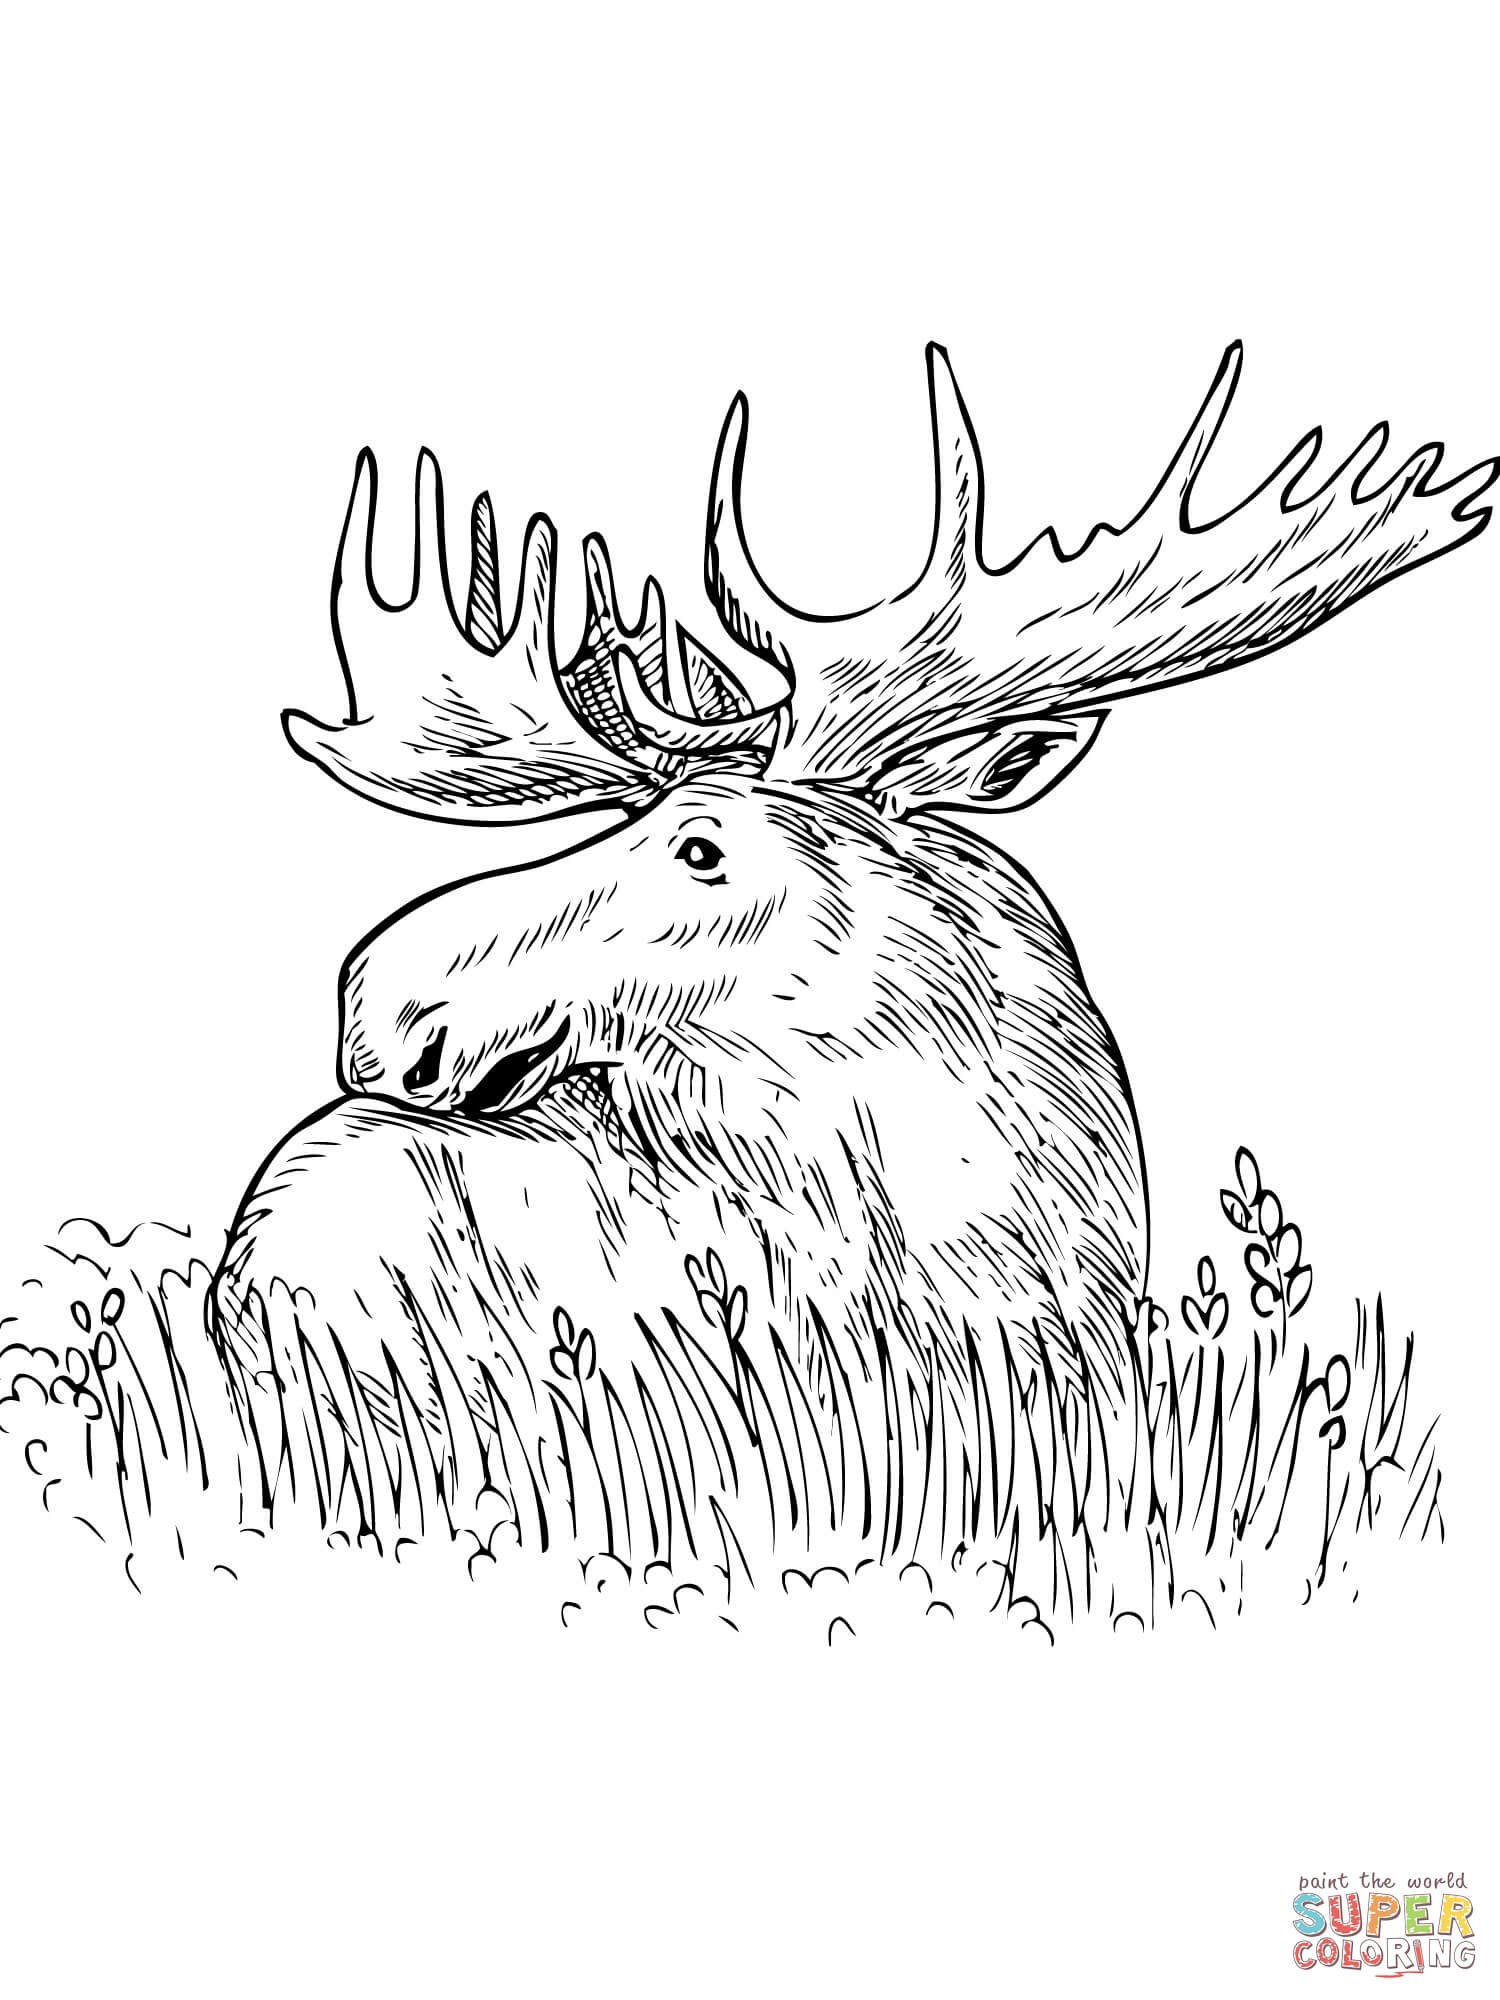 moose-coloring-page-0003-q1